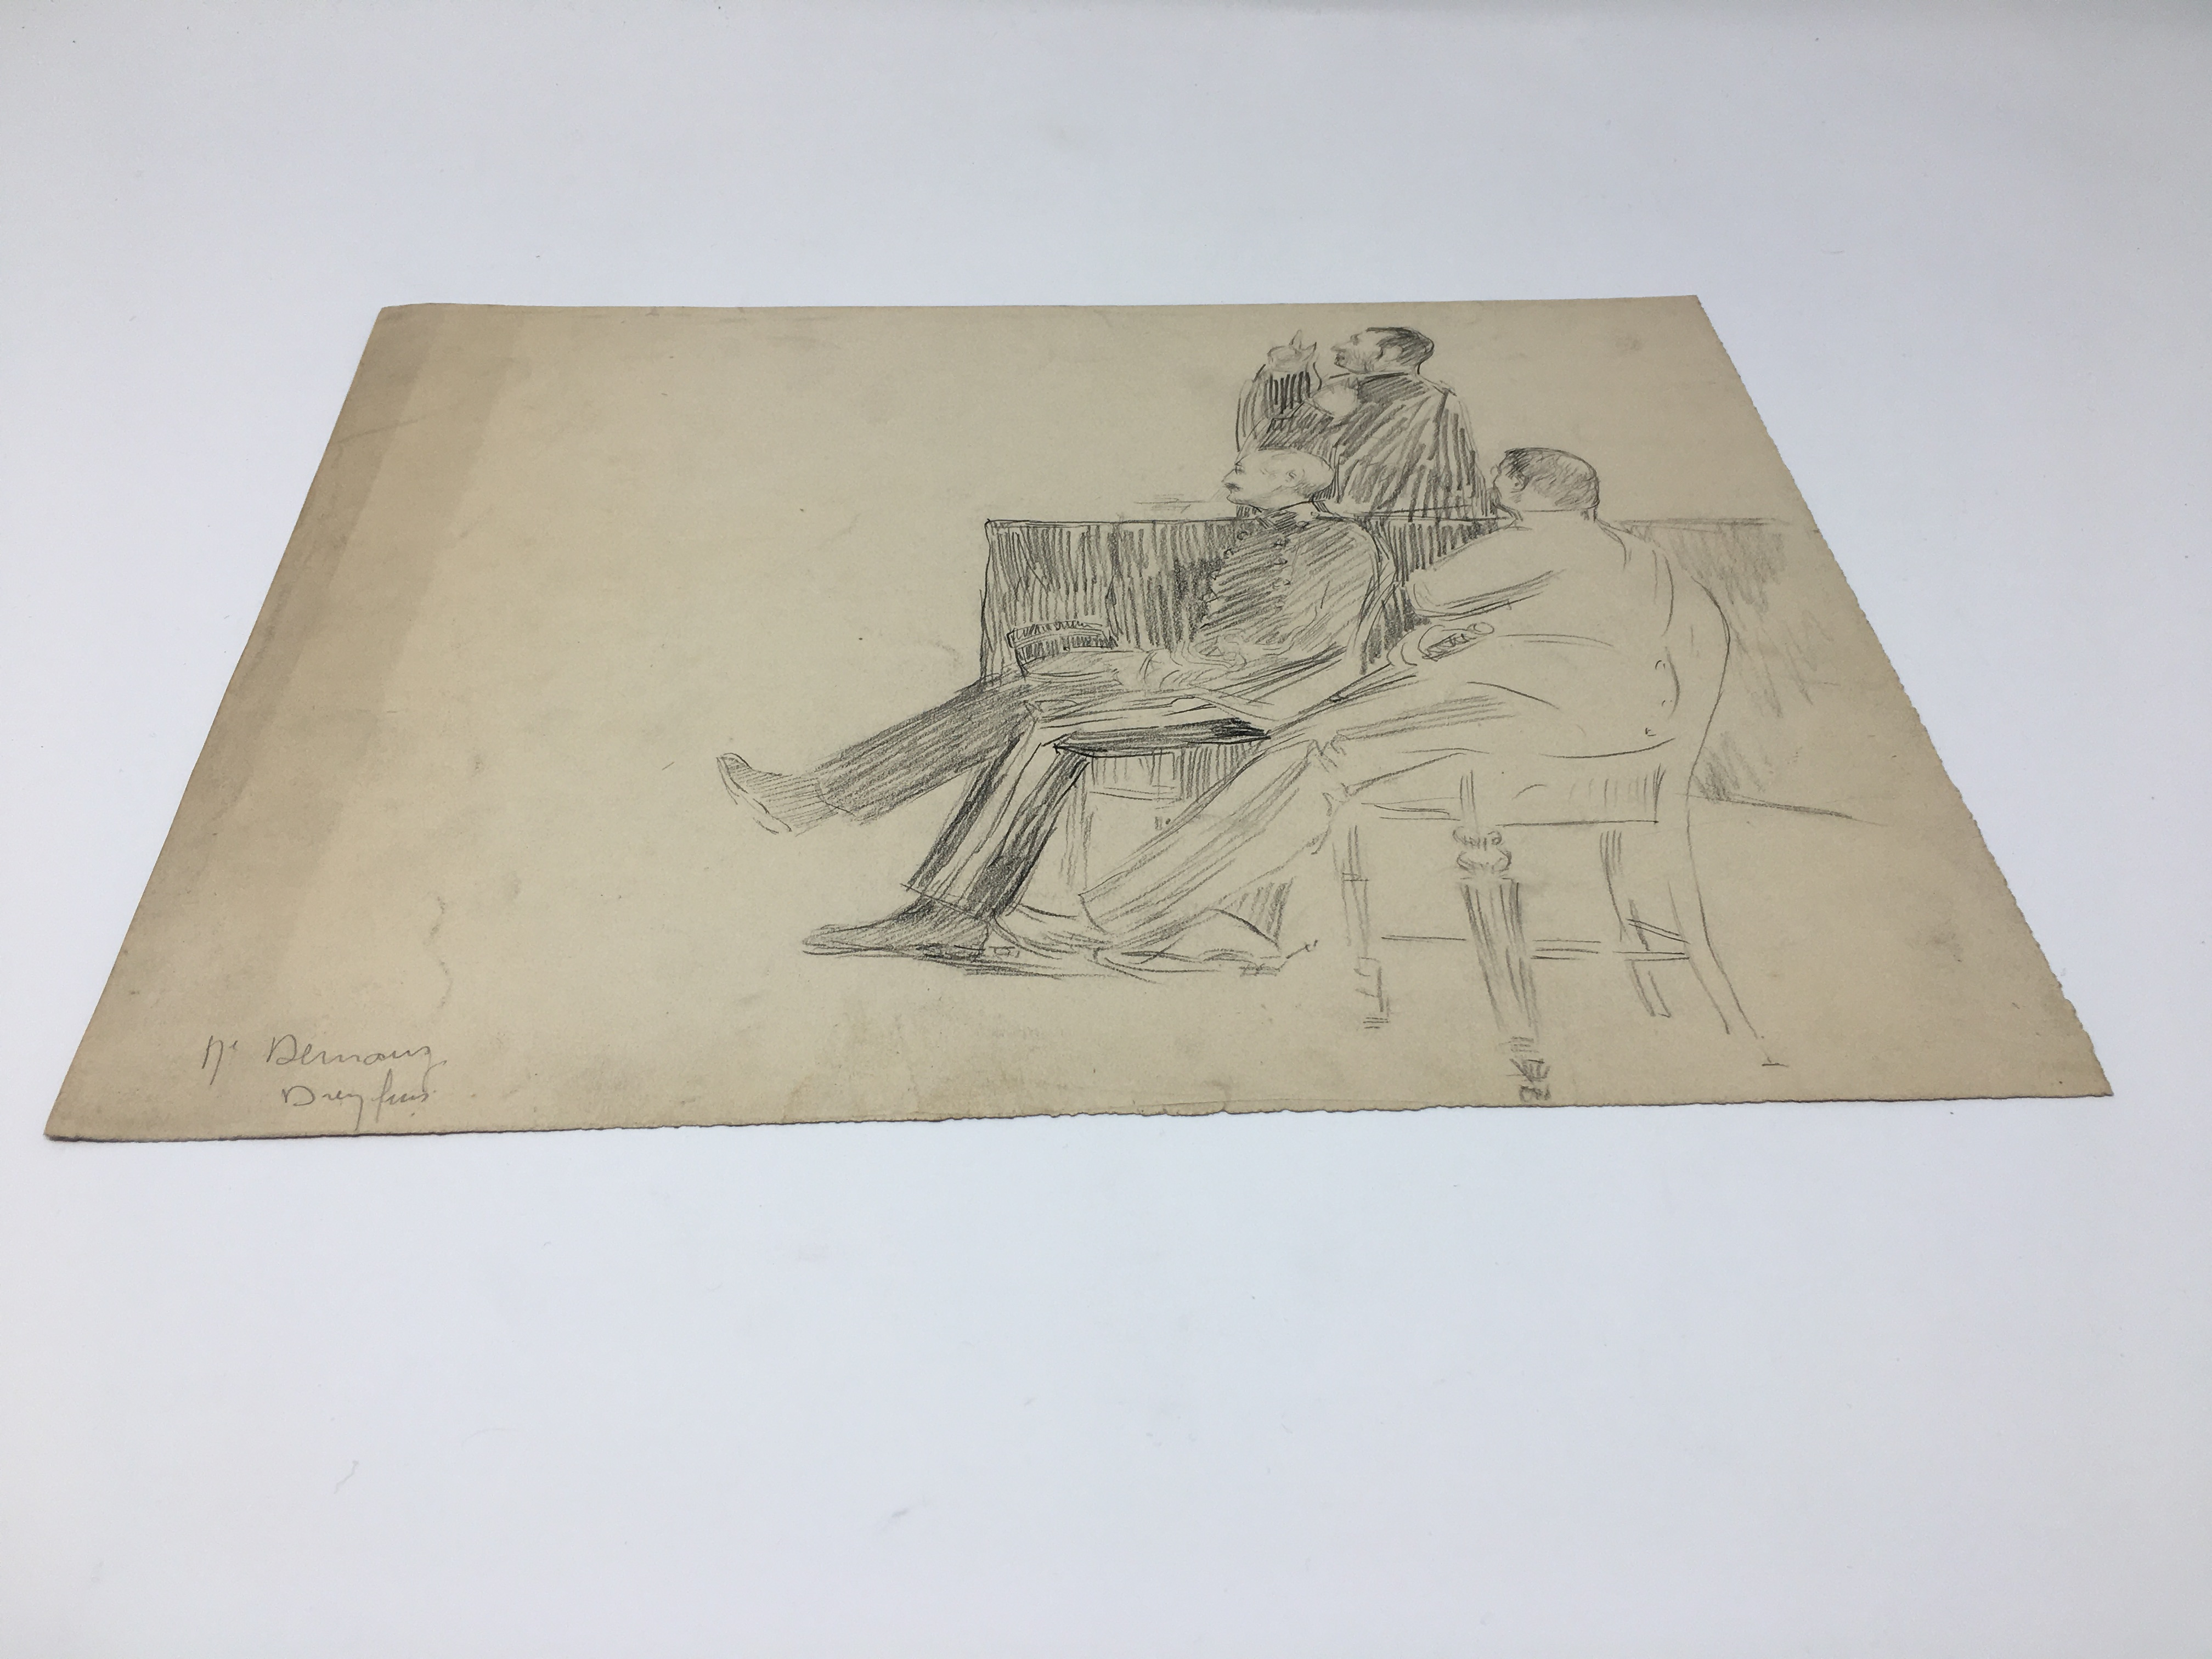 J'Accuse Newspaper, Emile Zola Quote, Signed Dreyfus Portrait, Rare Trial Drawings & Schwartzkoppen - Image 26 of 74